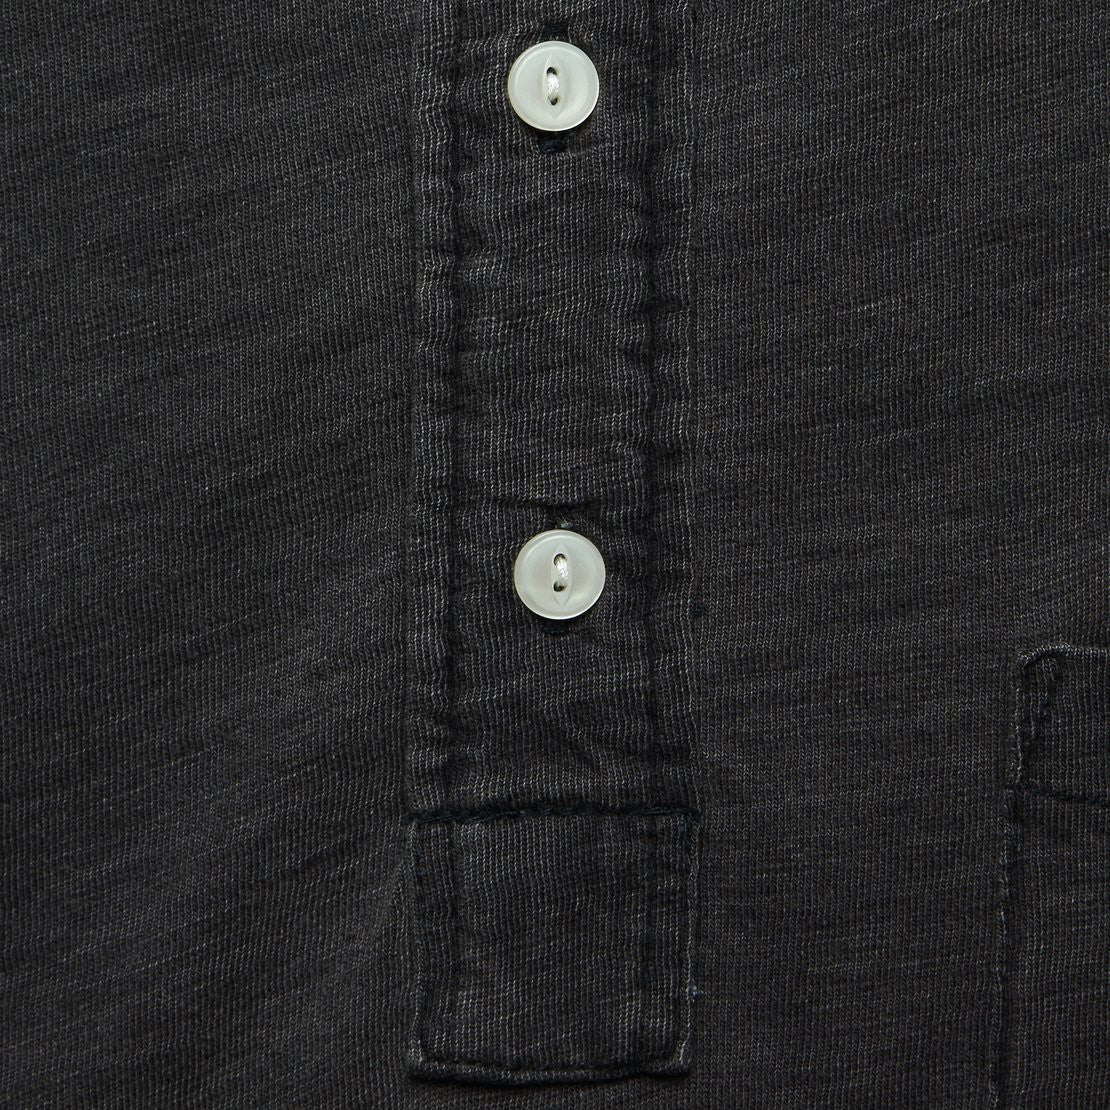 Indigo Dyed Polo Shirt - Black Wash